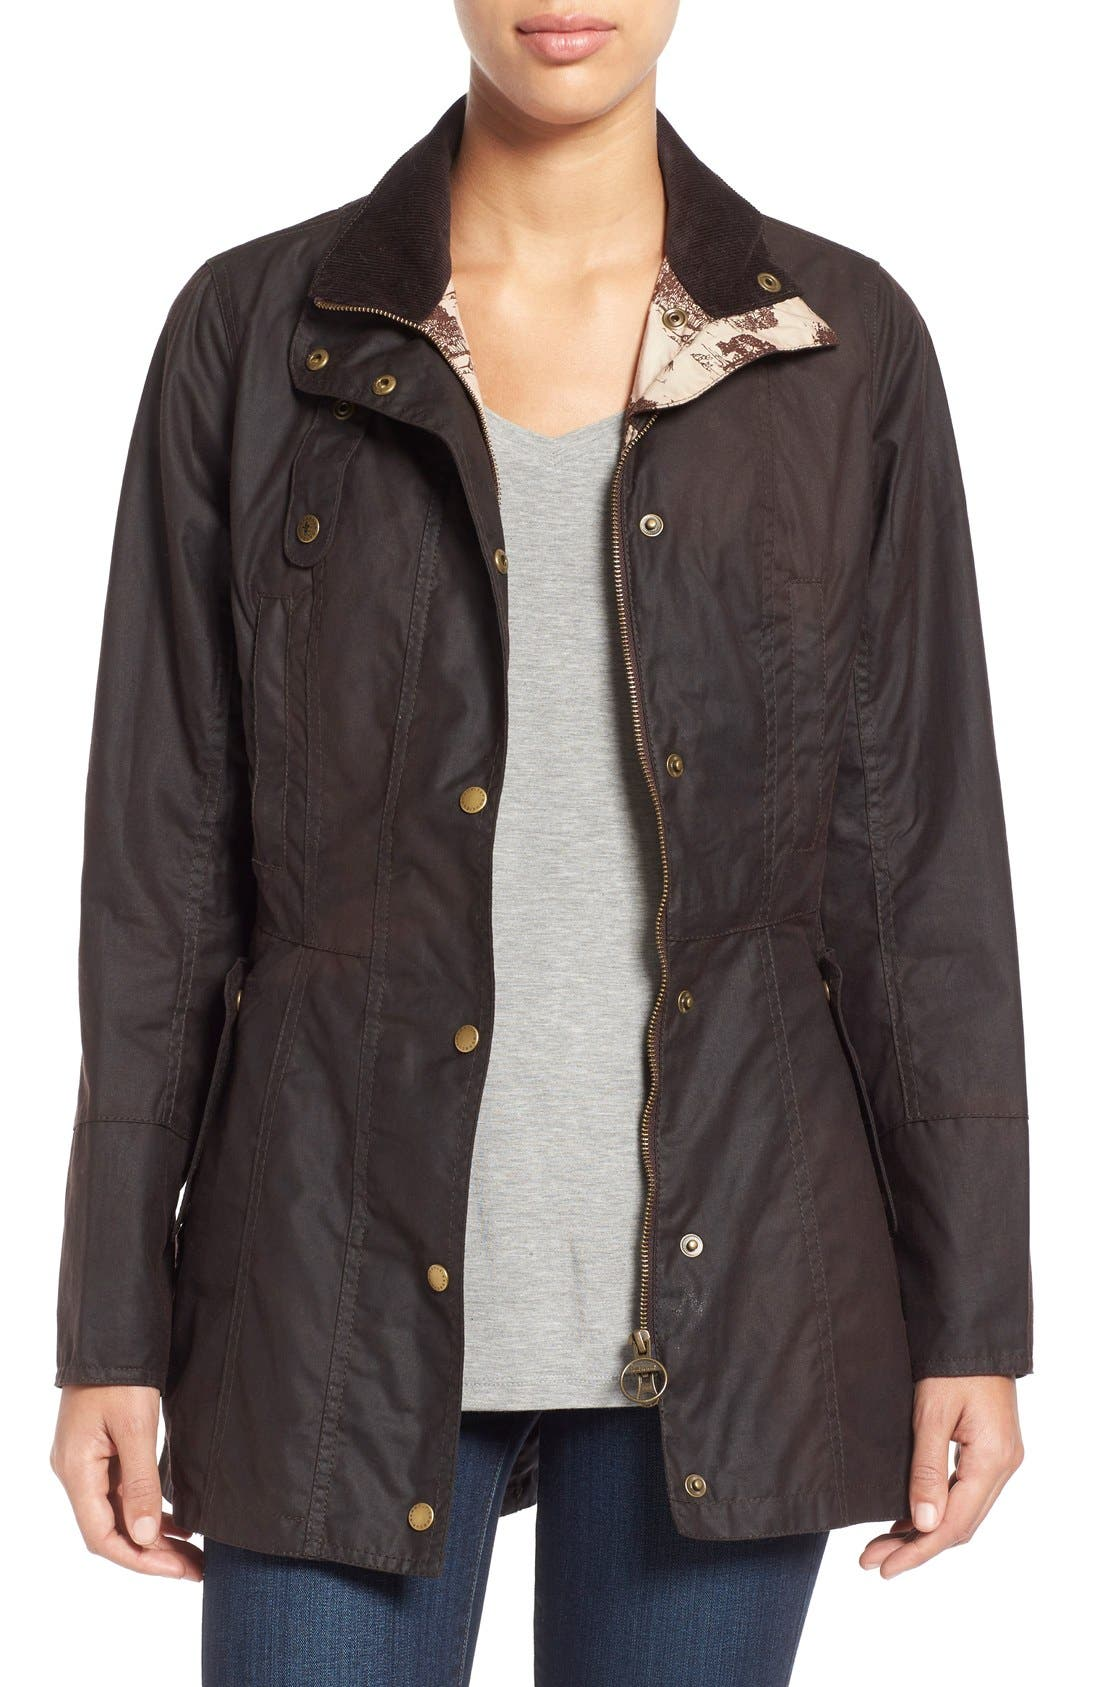 Alternate Image 1 Selected - Barbour 'Holsteiner' Skirted Waxed Cotton Jacket